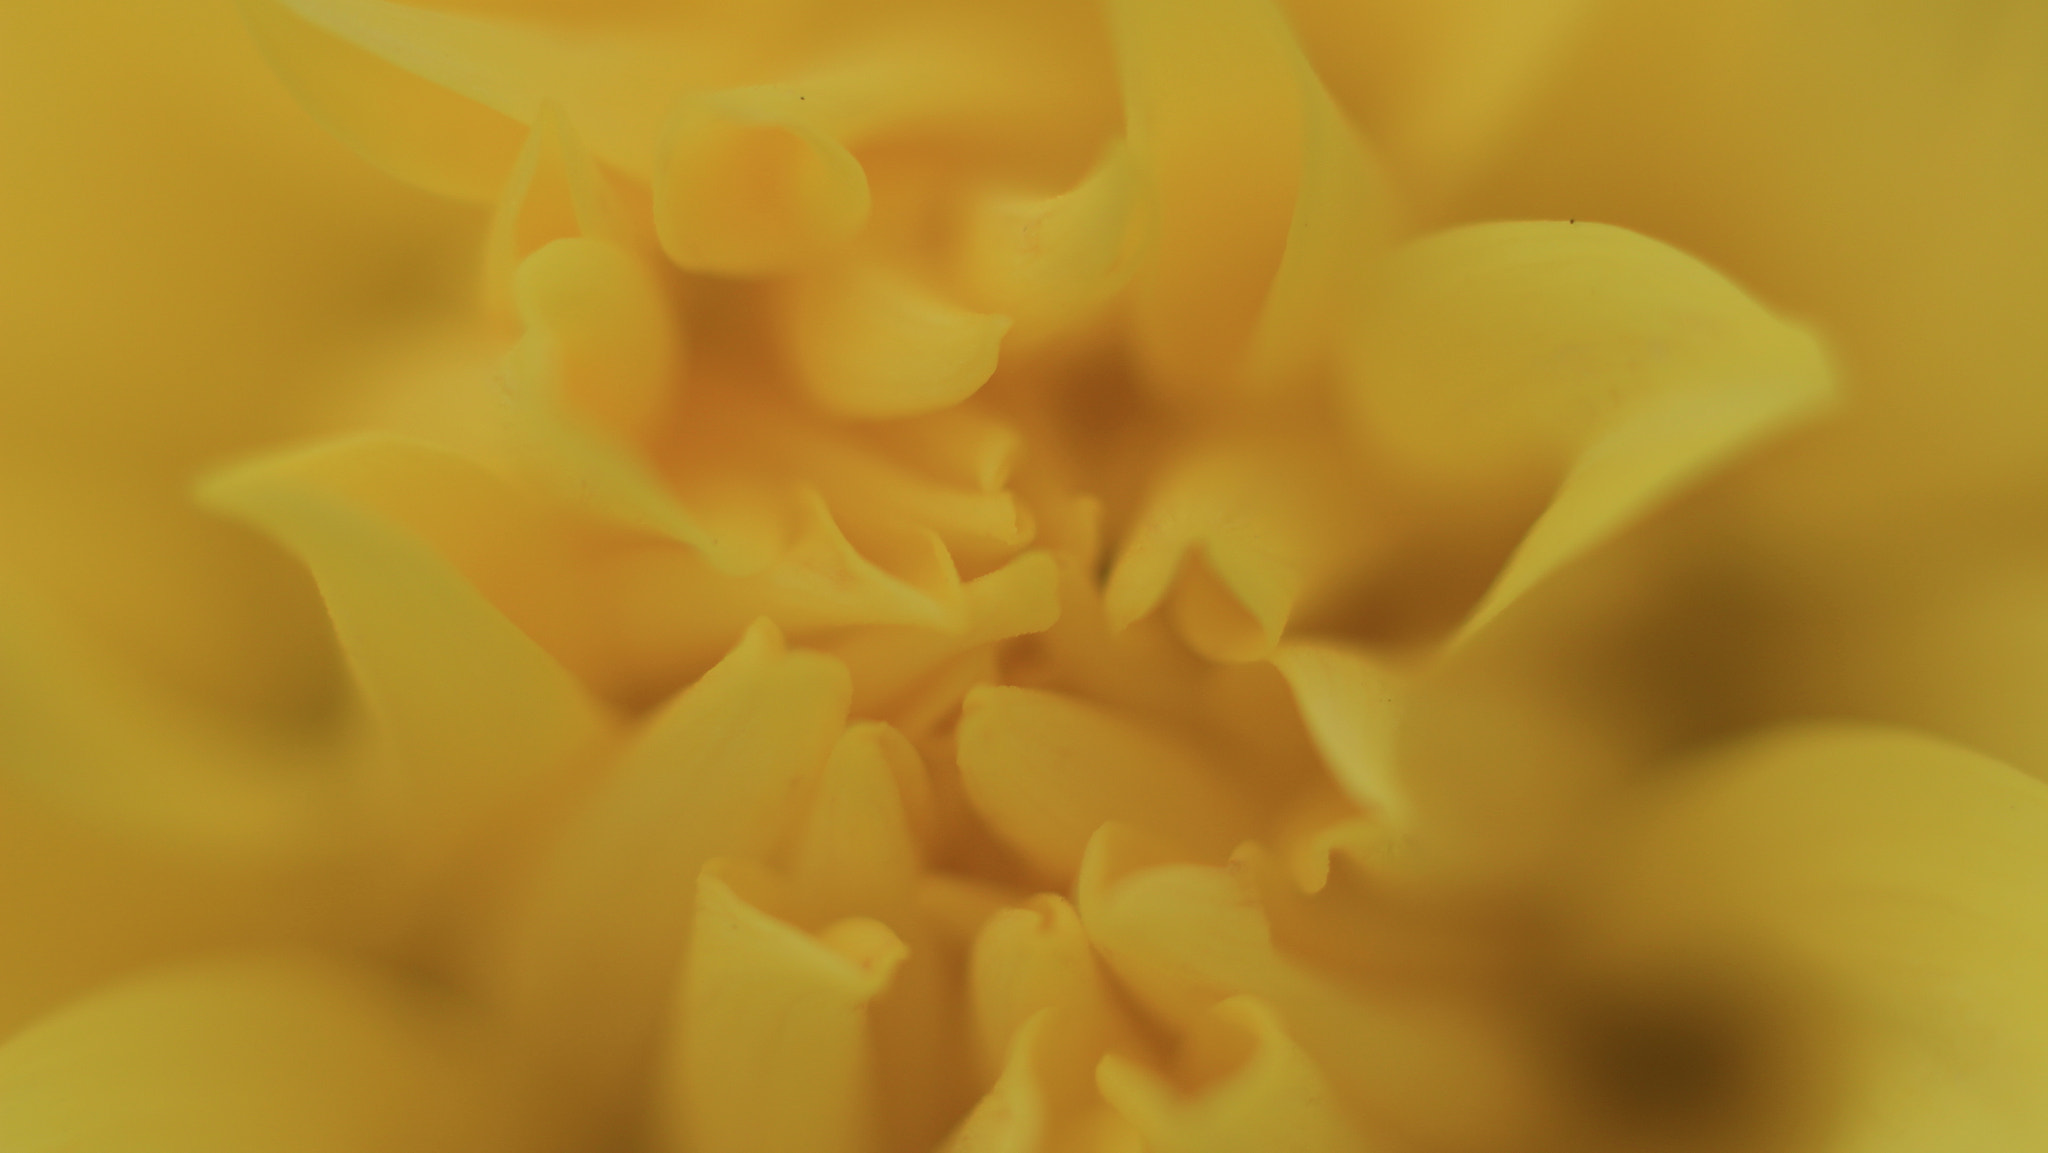 Photograph Yellow by Studio Photo Design on 500px